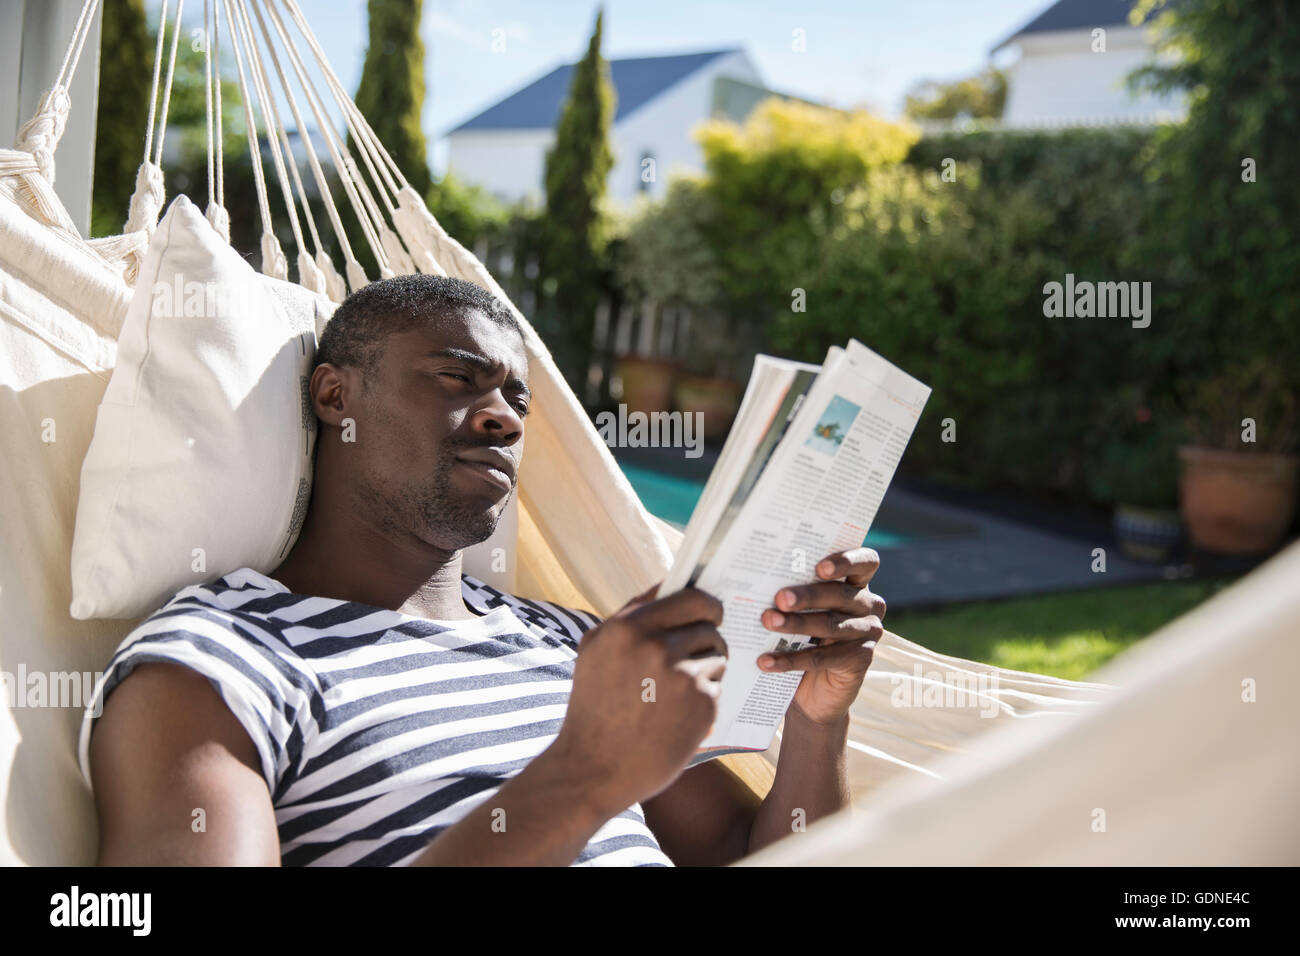 Young man reclining on garden hammock reading a magazine - Stock Image